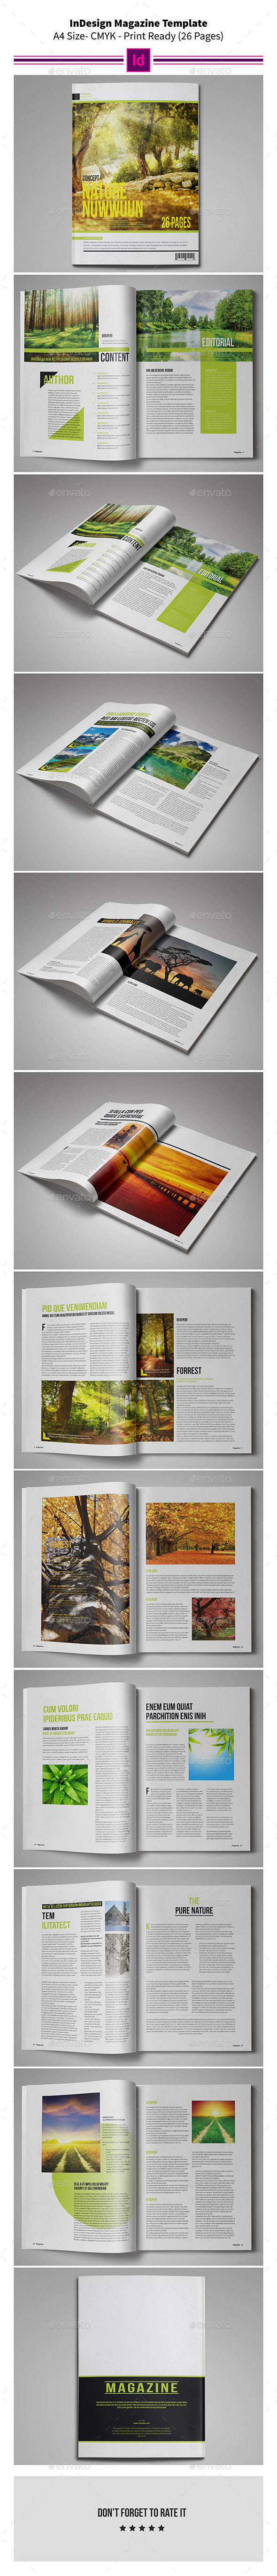 Nature MagazineTemplate 26 Pages - Magazines Print Templates